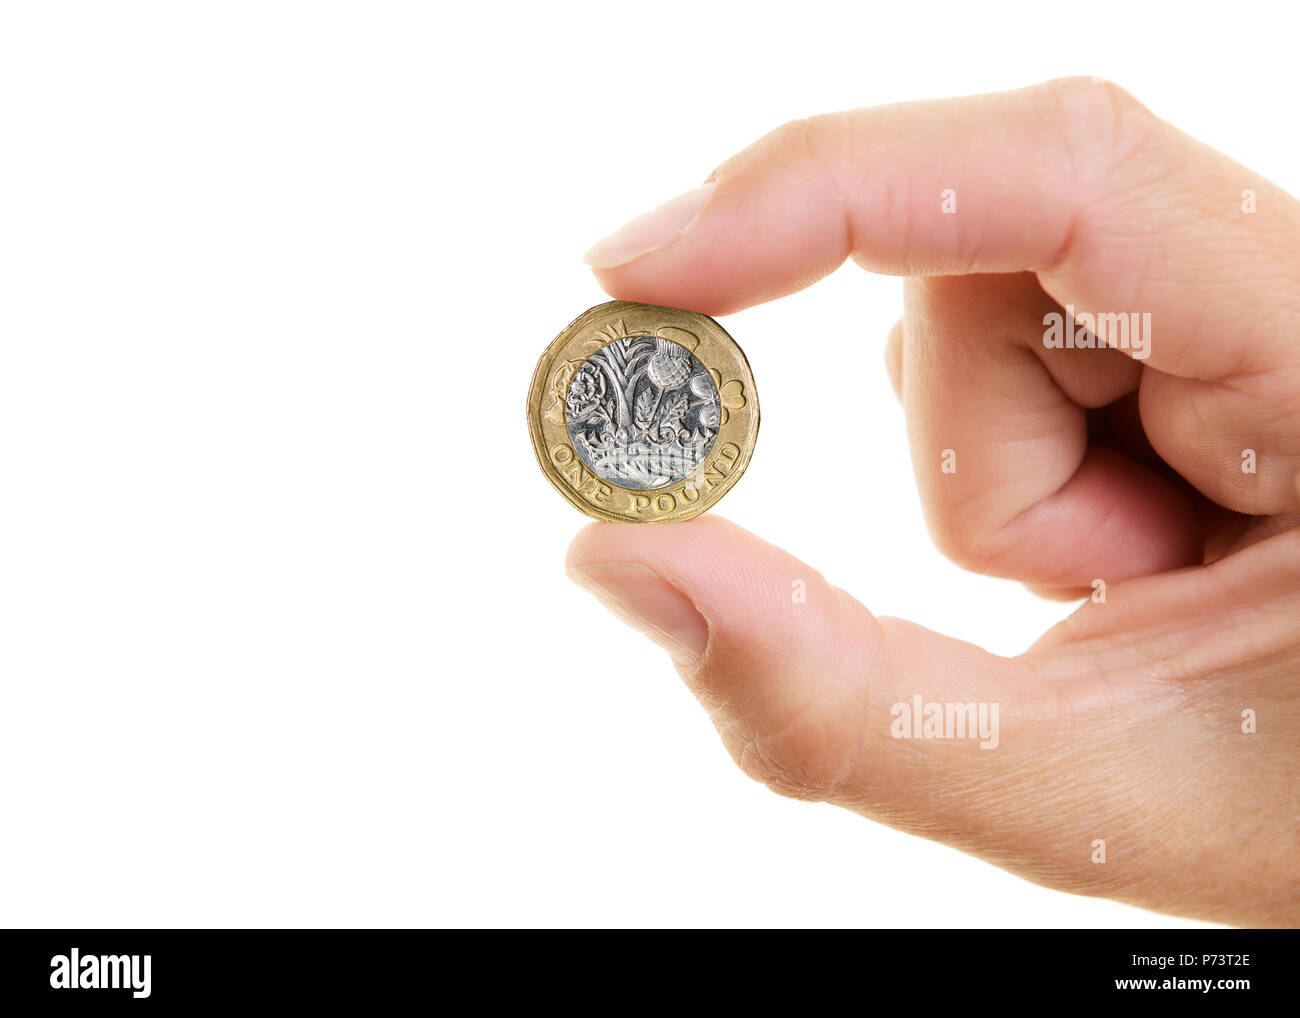 New Pound Coin Held Between the Fingers of a Womans Hand, Cut Out - Stock Image